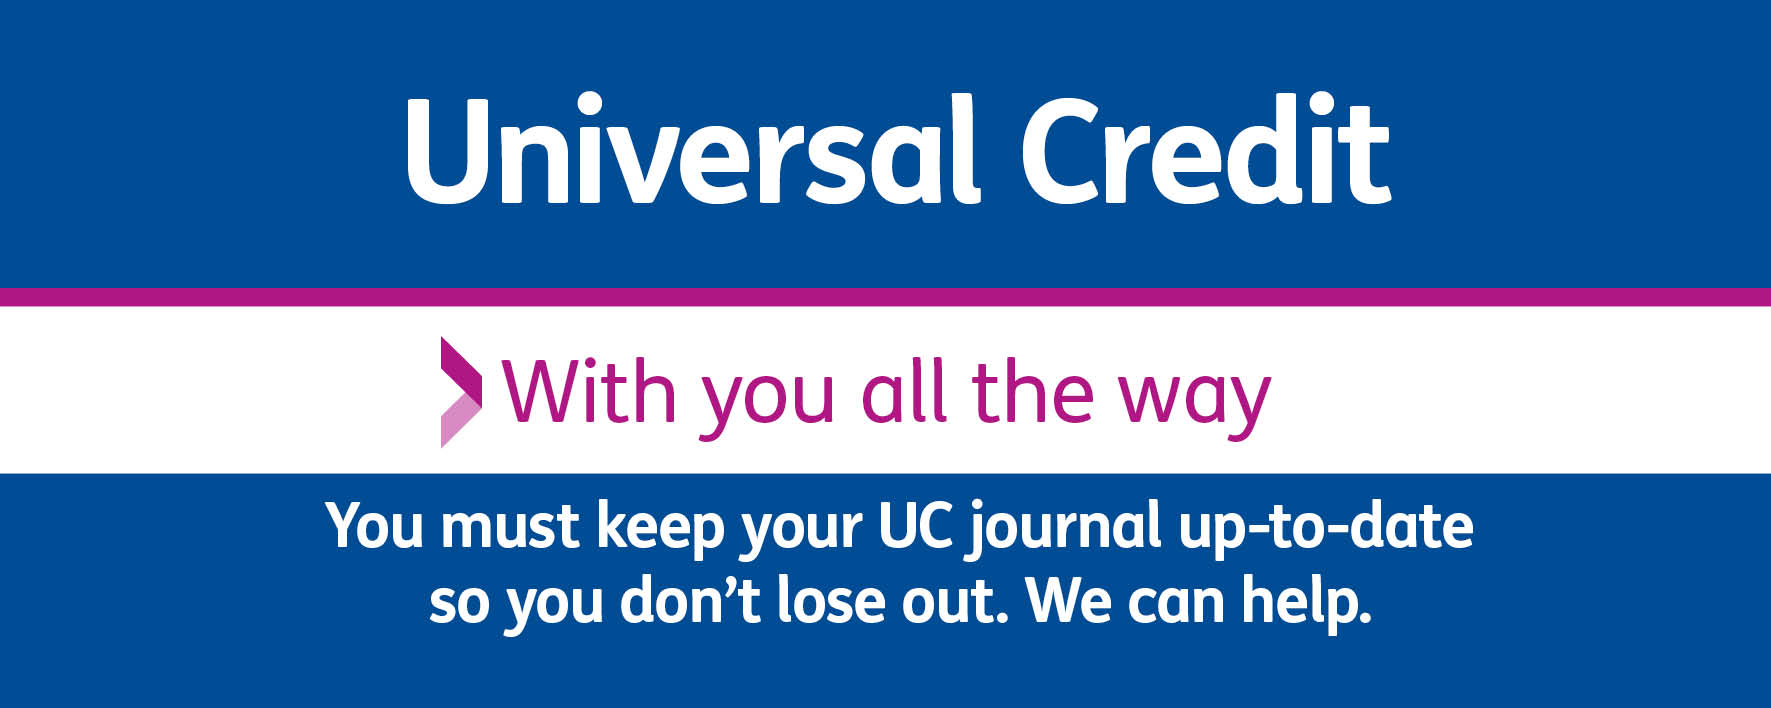 Universal Credit - with you all the way letterbox WLHP